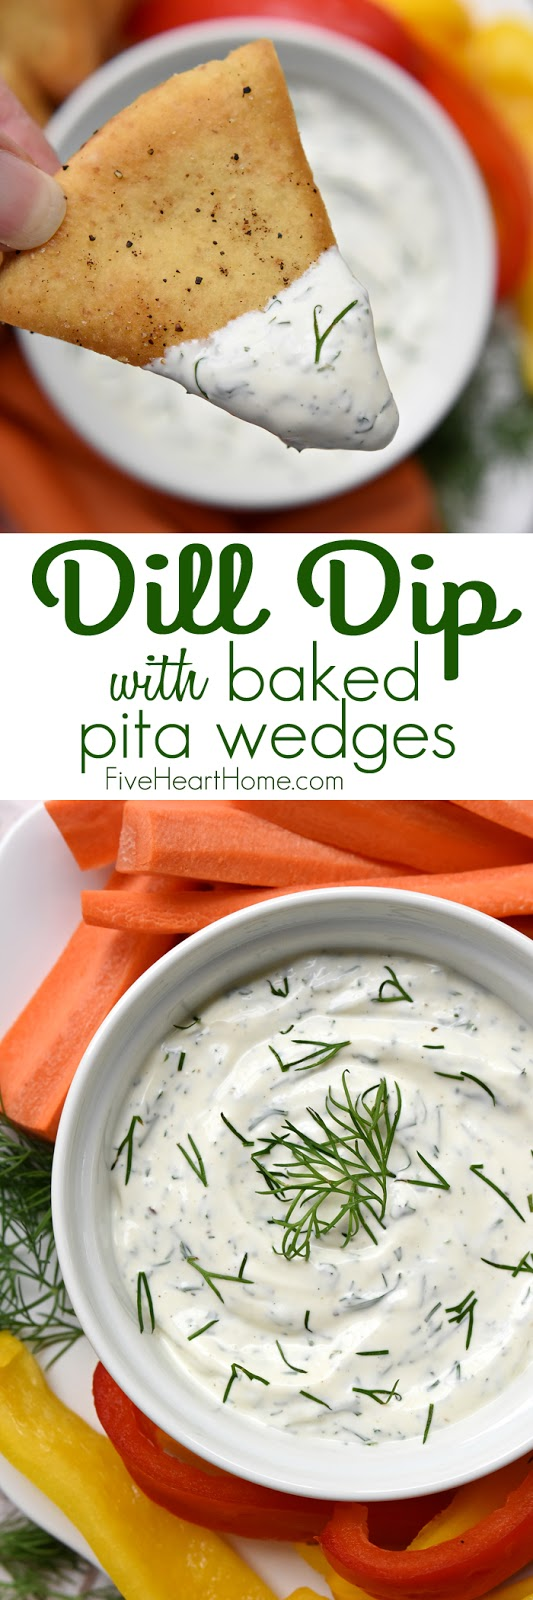 Dreamy Dill Dip with Baked Pita Wedges Recipe